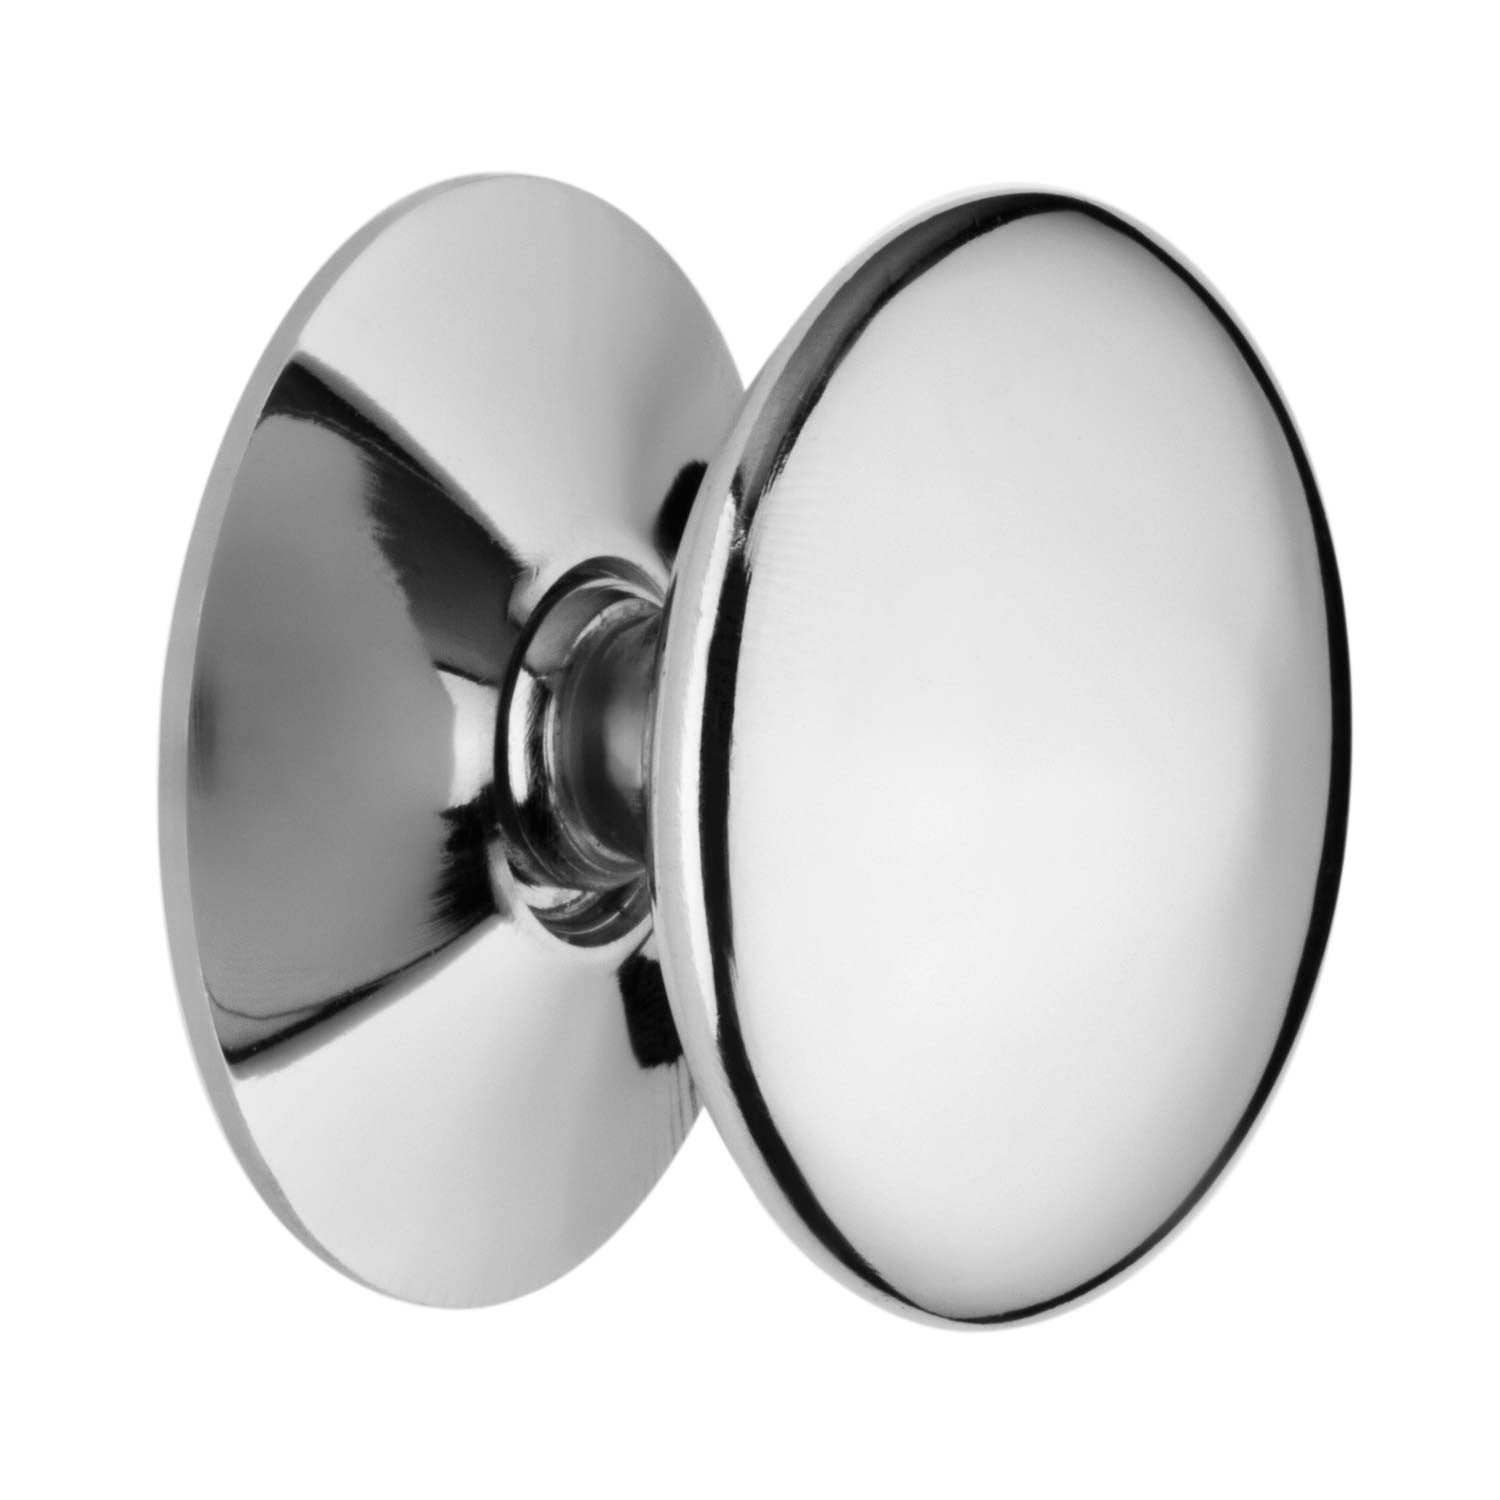 Chrome Plated Brass Victorian Style Pull Knob - RKL Tools & Hardware  - 1